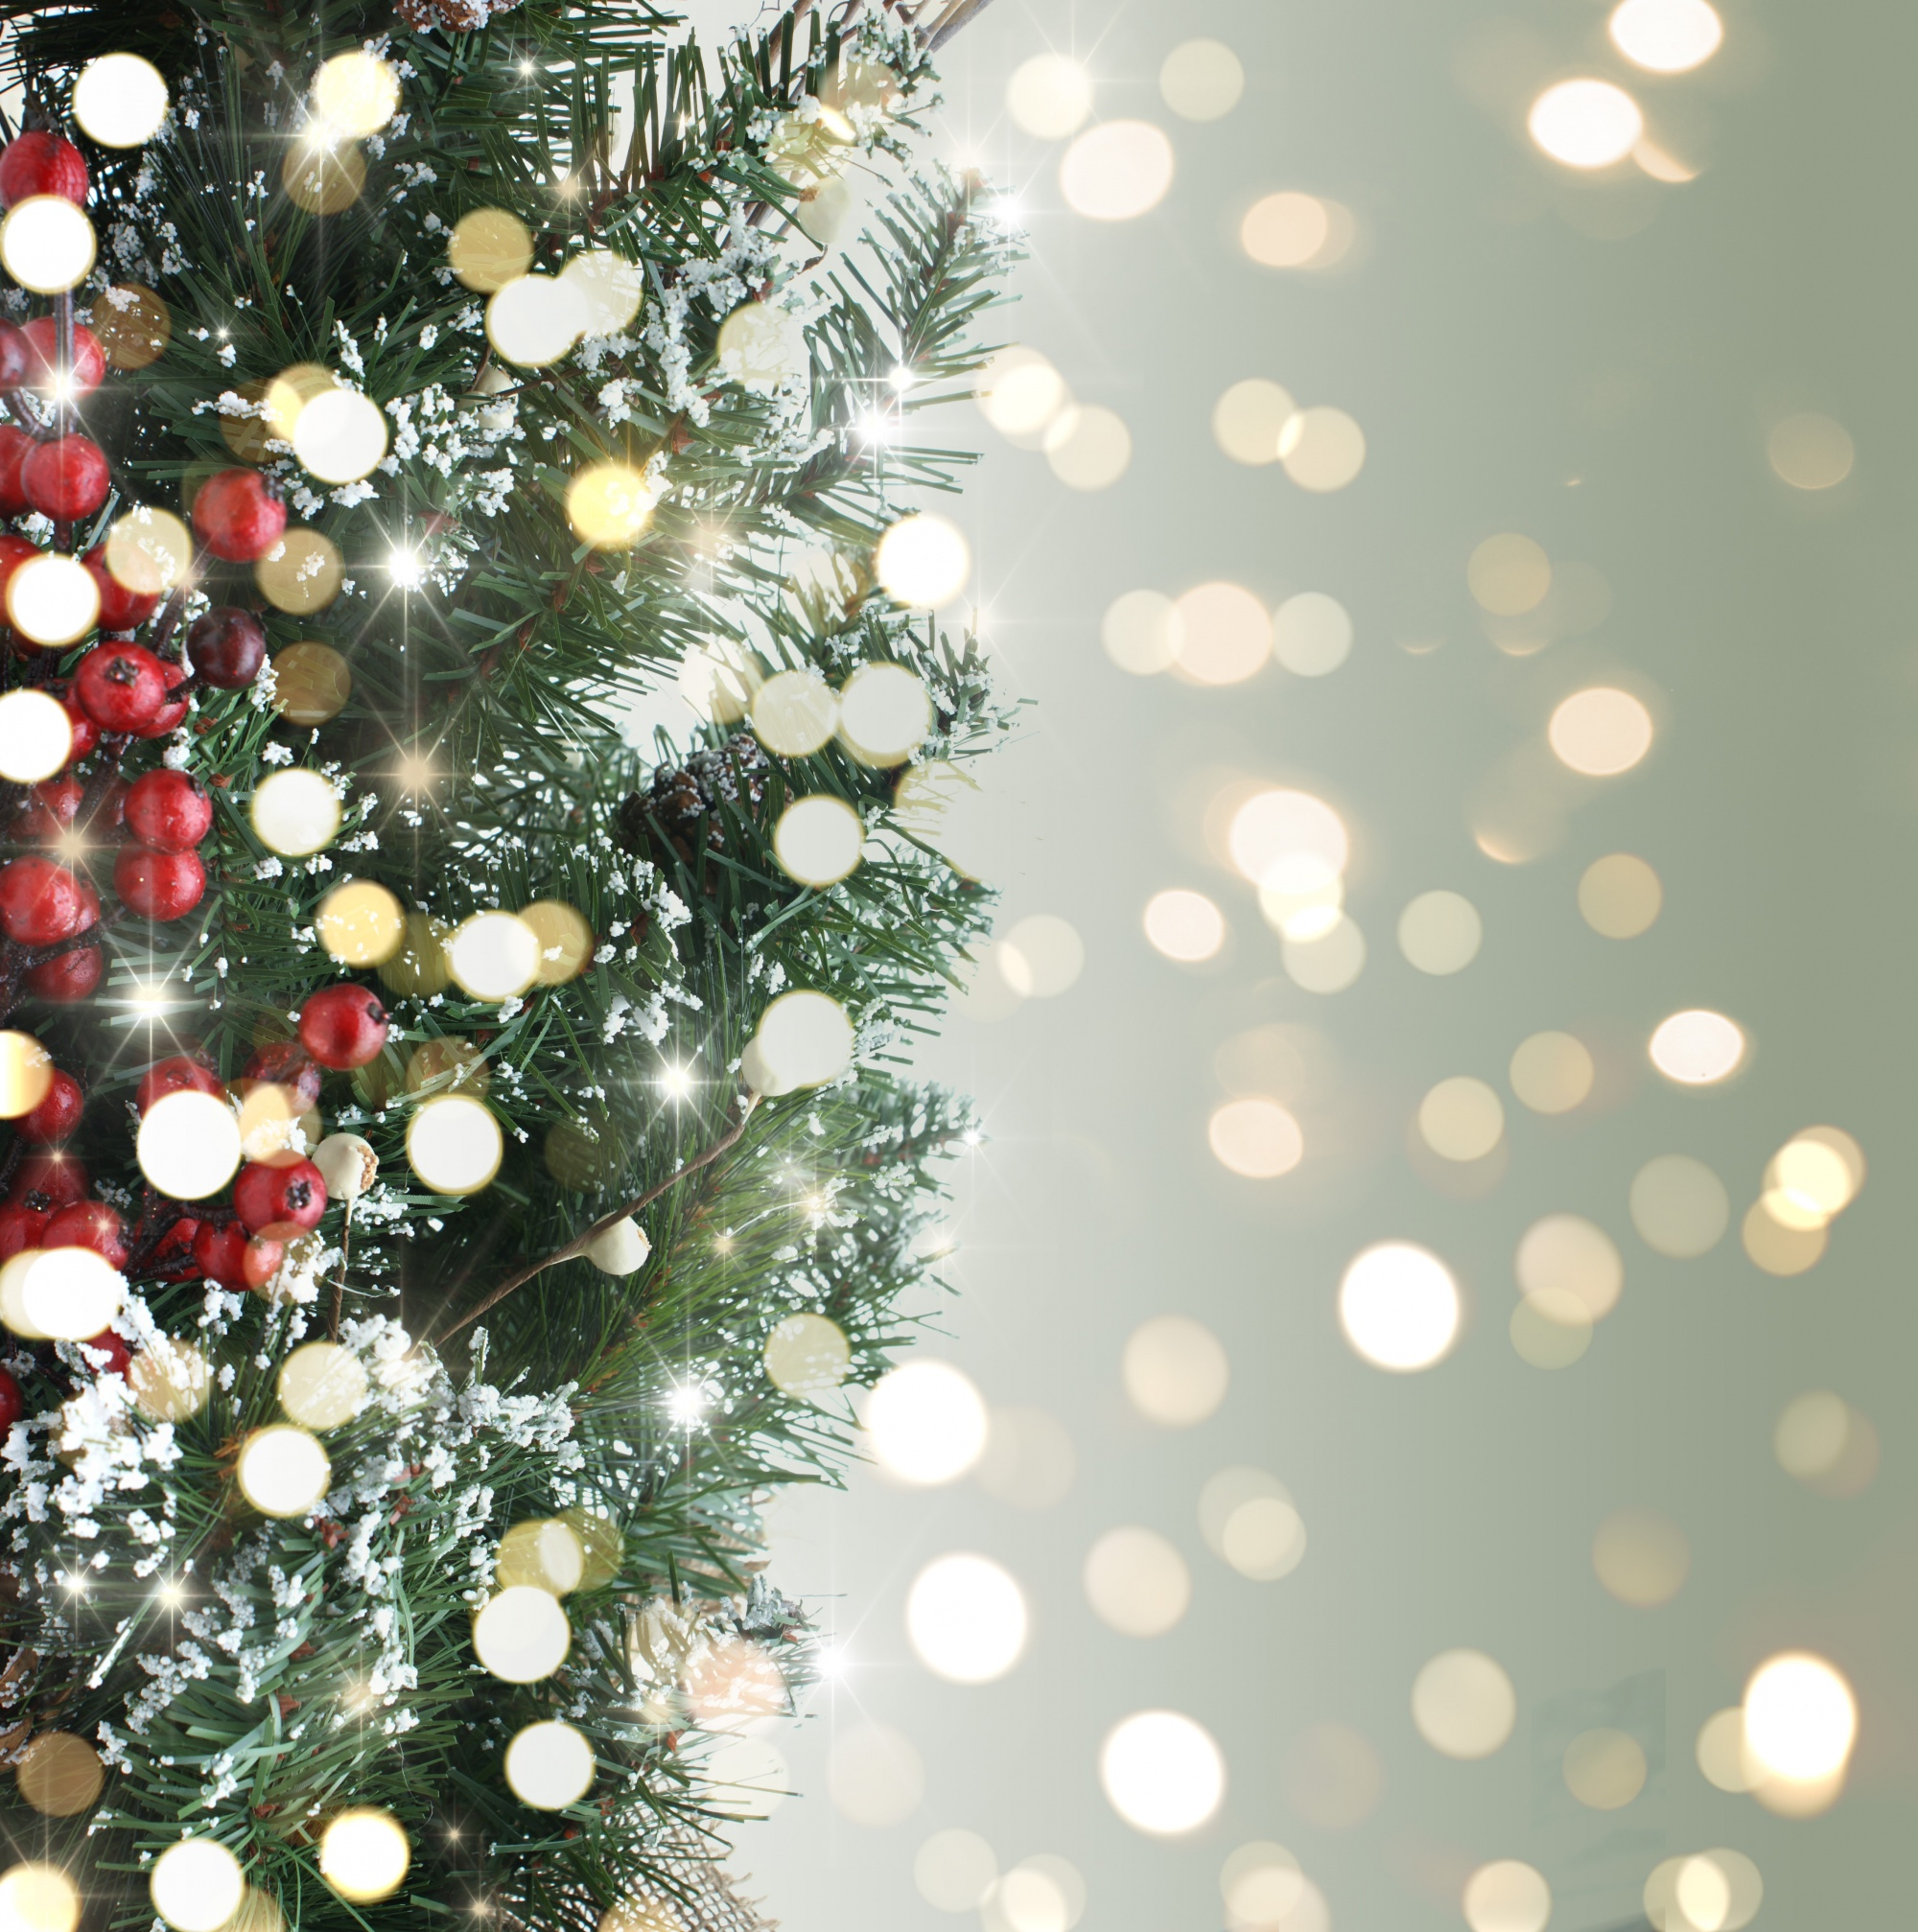 Christmas tree background with bokeh lights